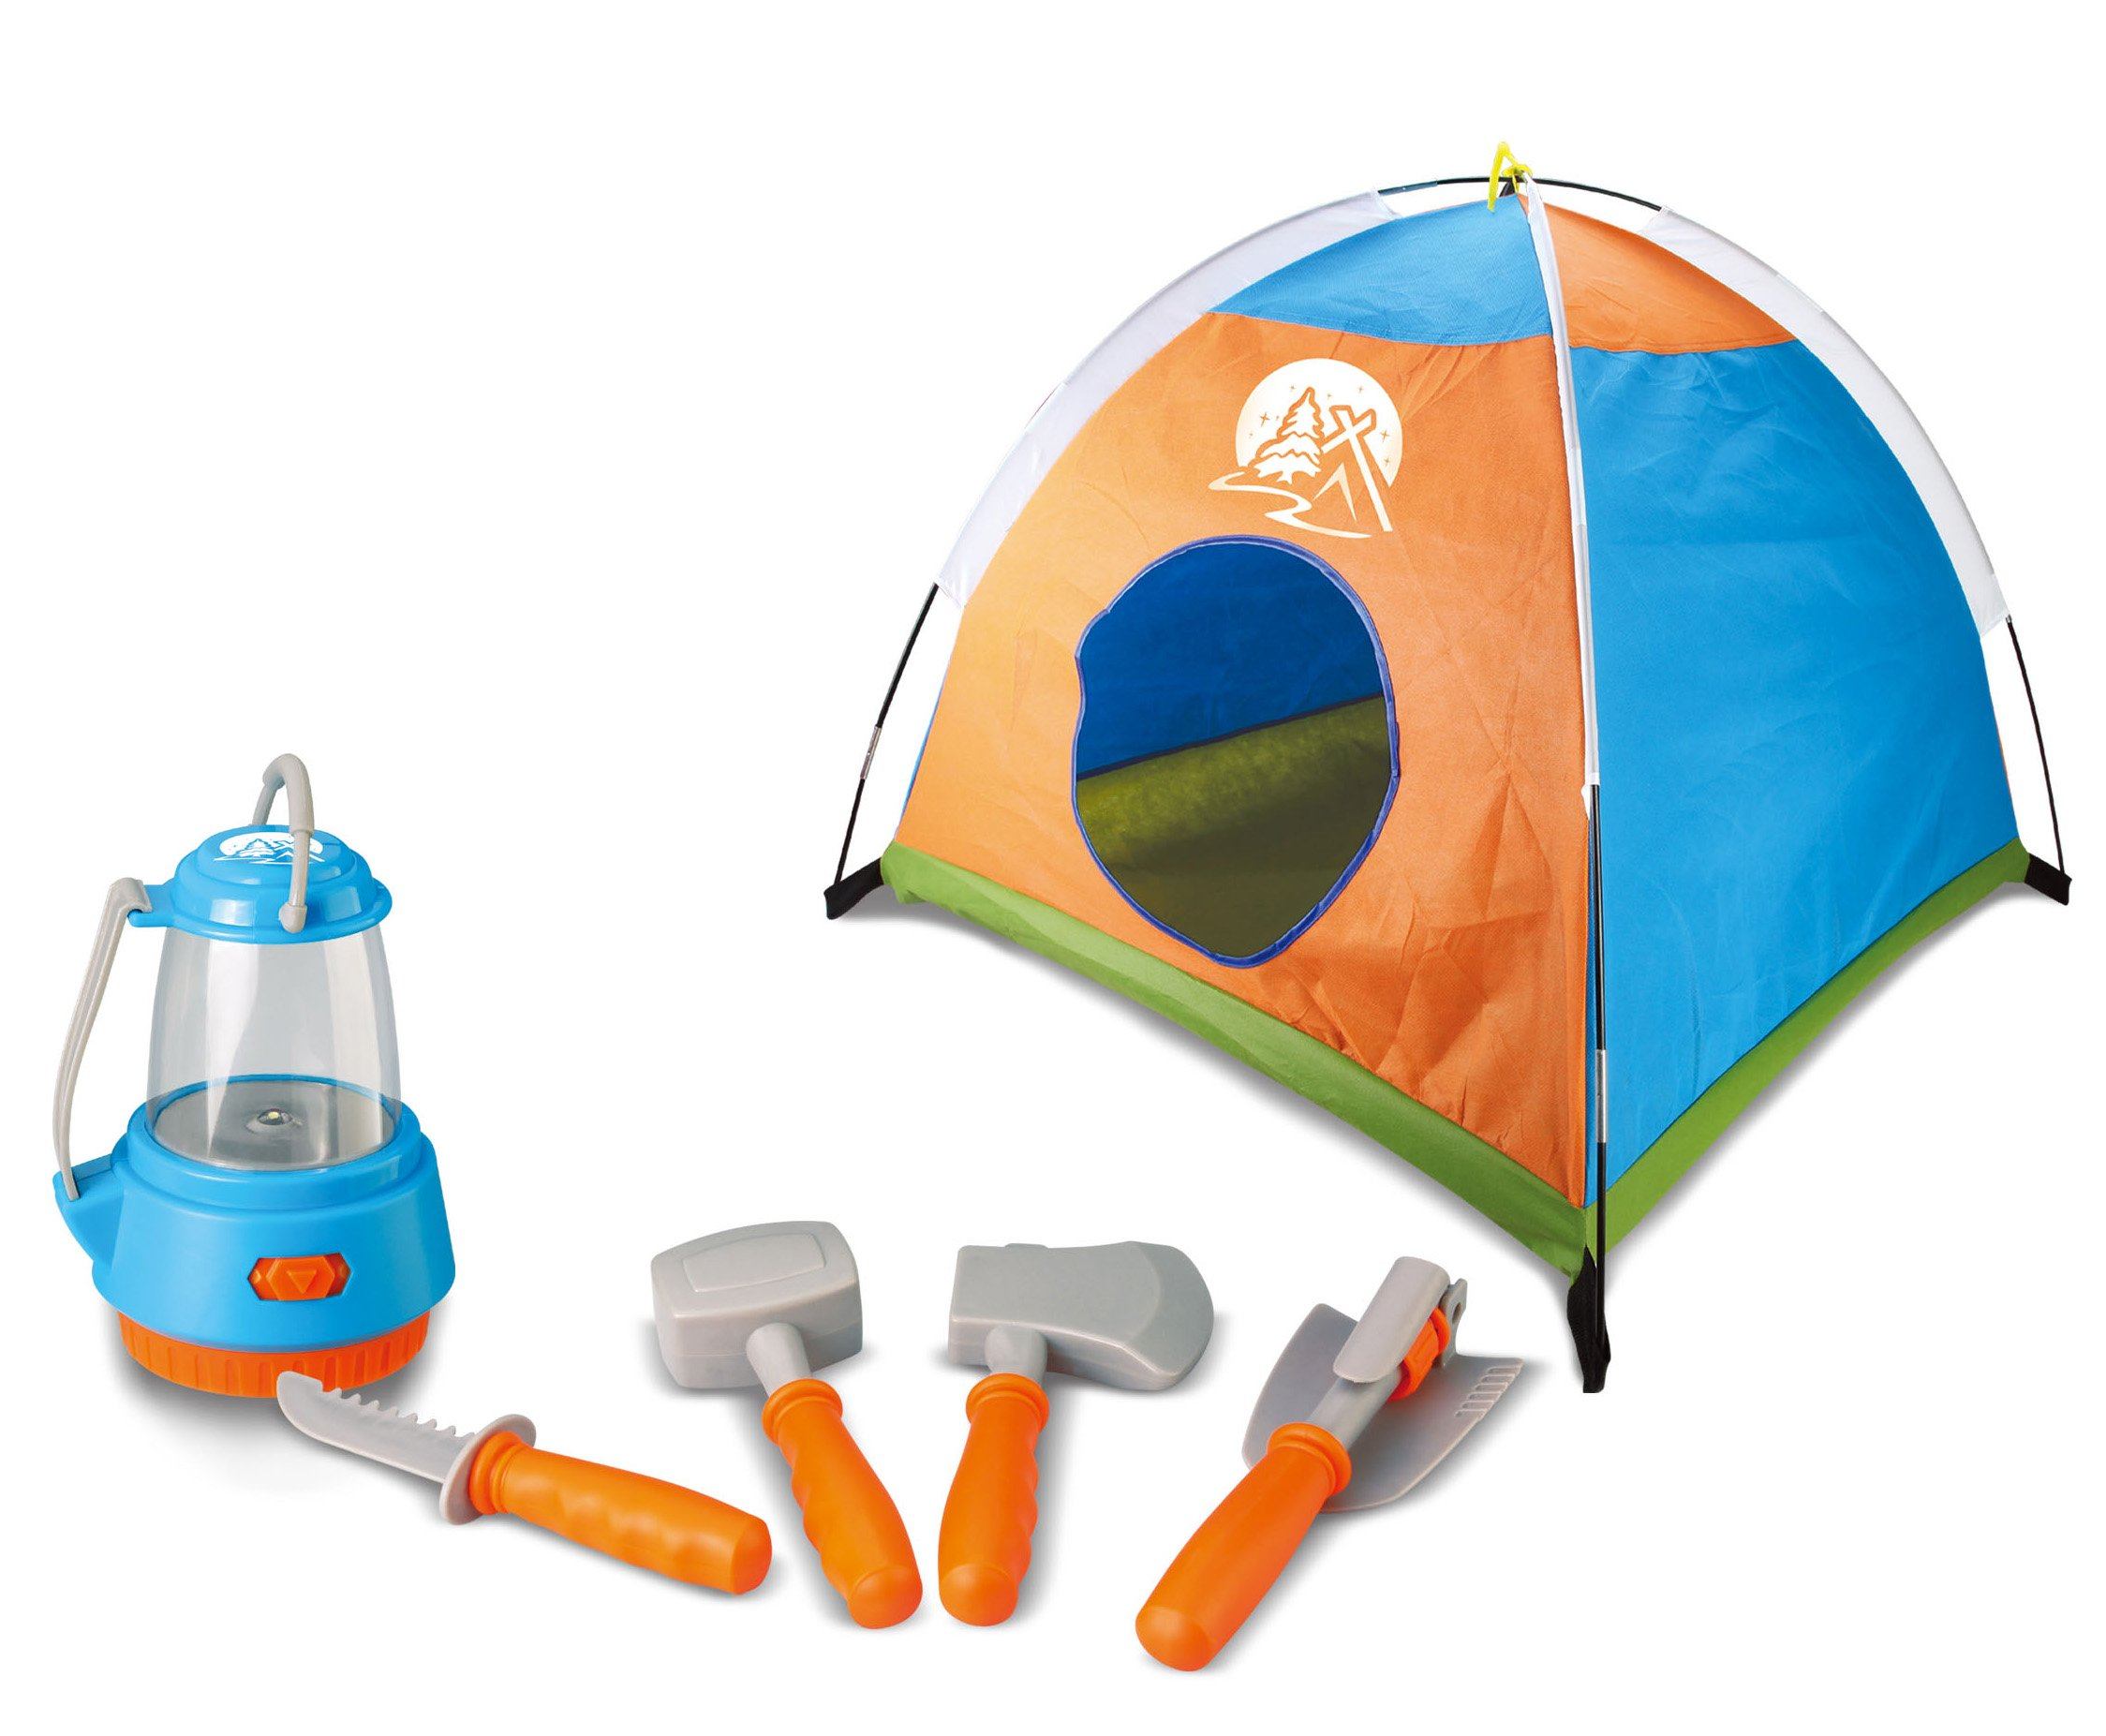 Berry Toys Little Explorer Camping Play Set with Tent (5-Piece)